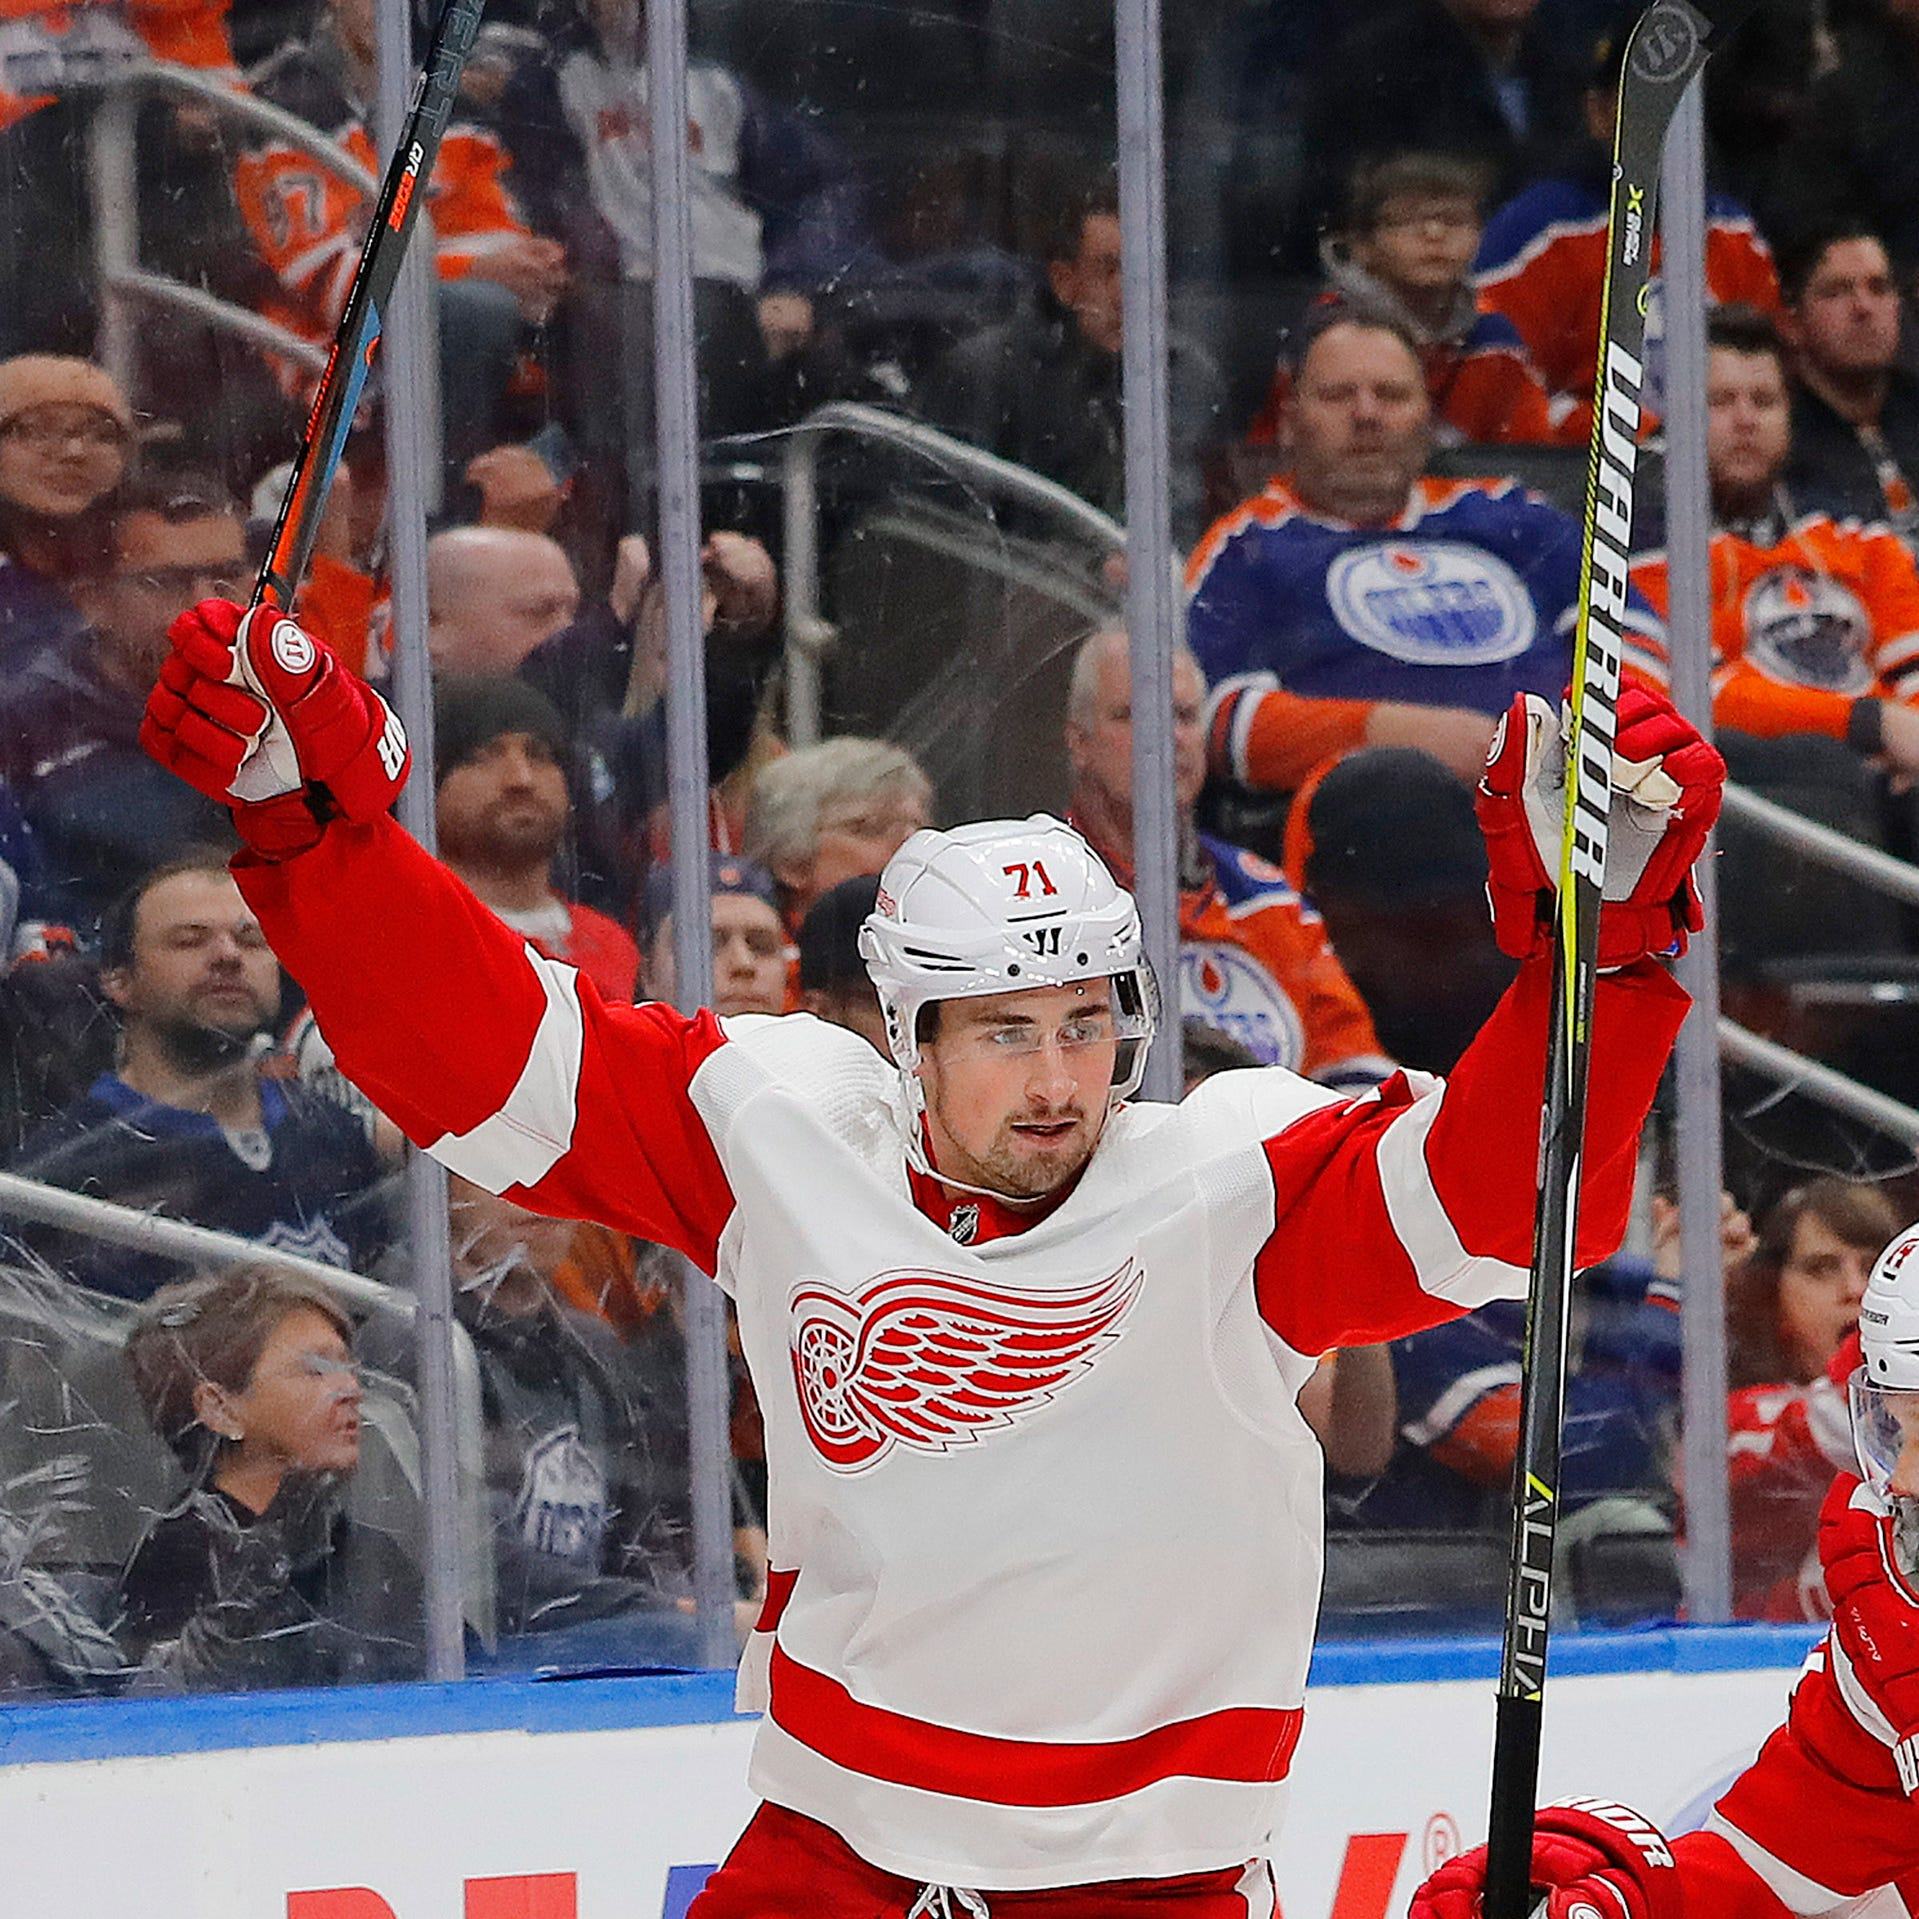 Detroit Red Wings finally won again. Here's what was most satisfying